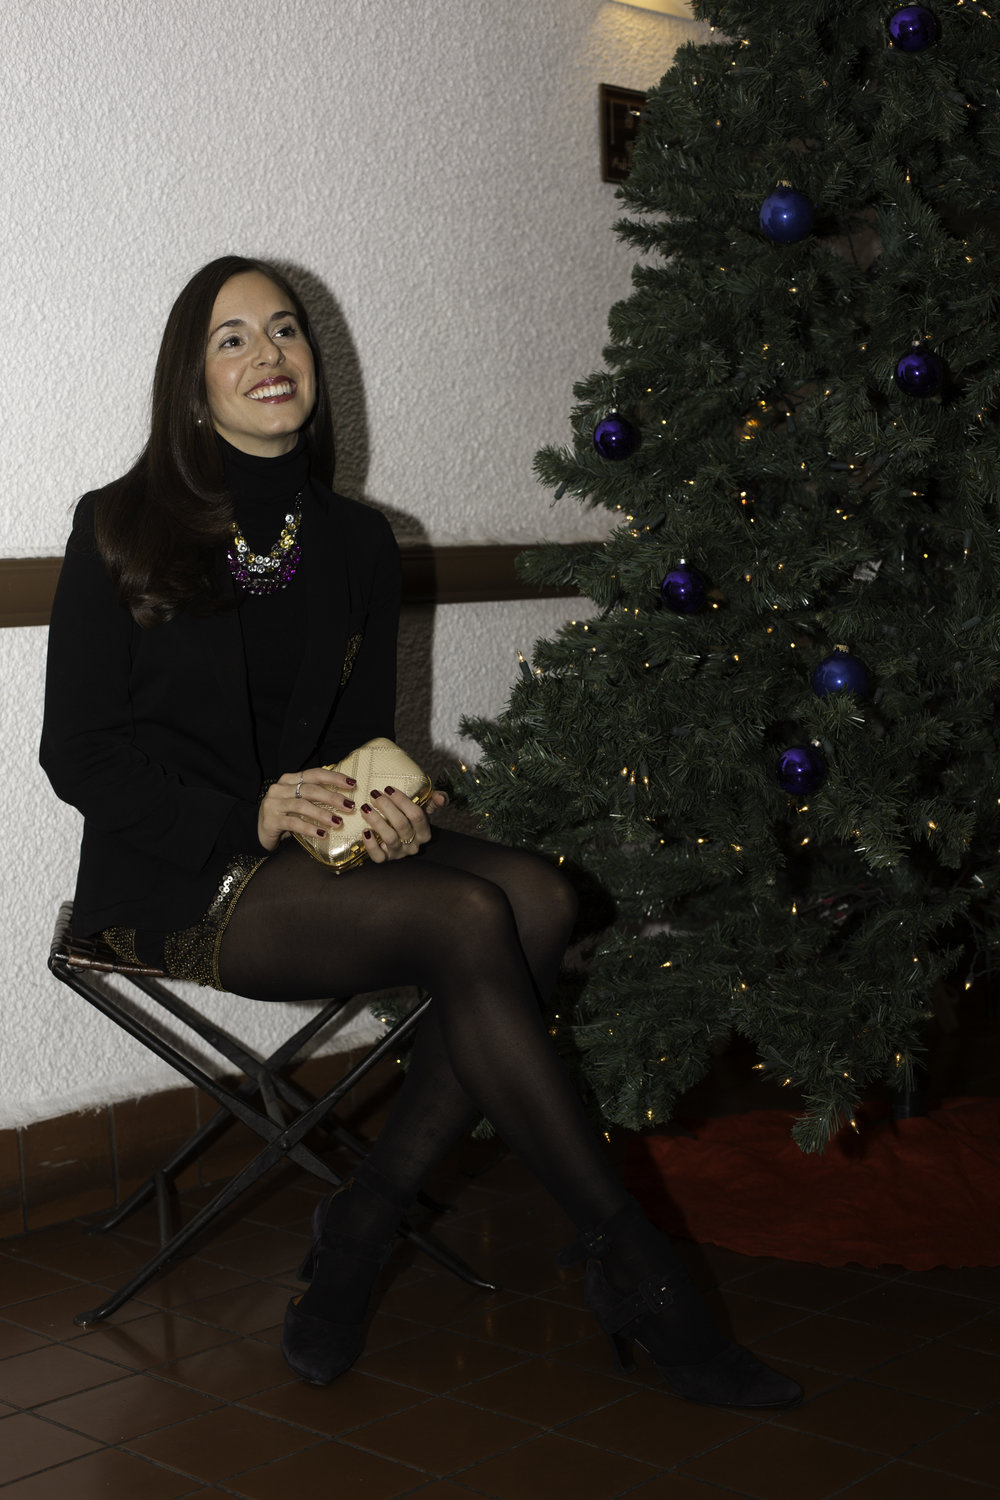 Sitting by the tree at a holiday party wearing my Ralph Lauren black with gold crest blazer, a Zara black turtleneck, gold Topshop sequin mini skirt, black tights, and vintage black suede pumps. My gold clutch is a Coach python holiday clutch. Photography by Francisco Graciano.